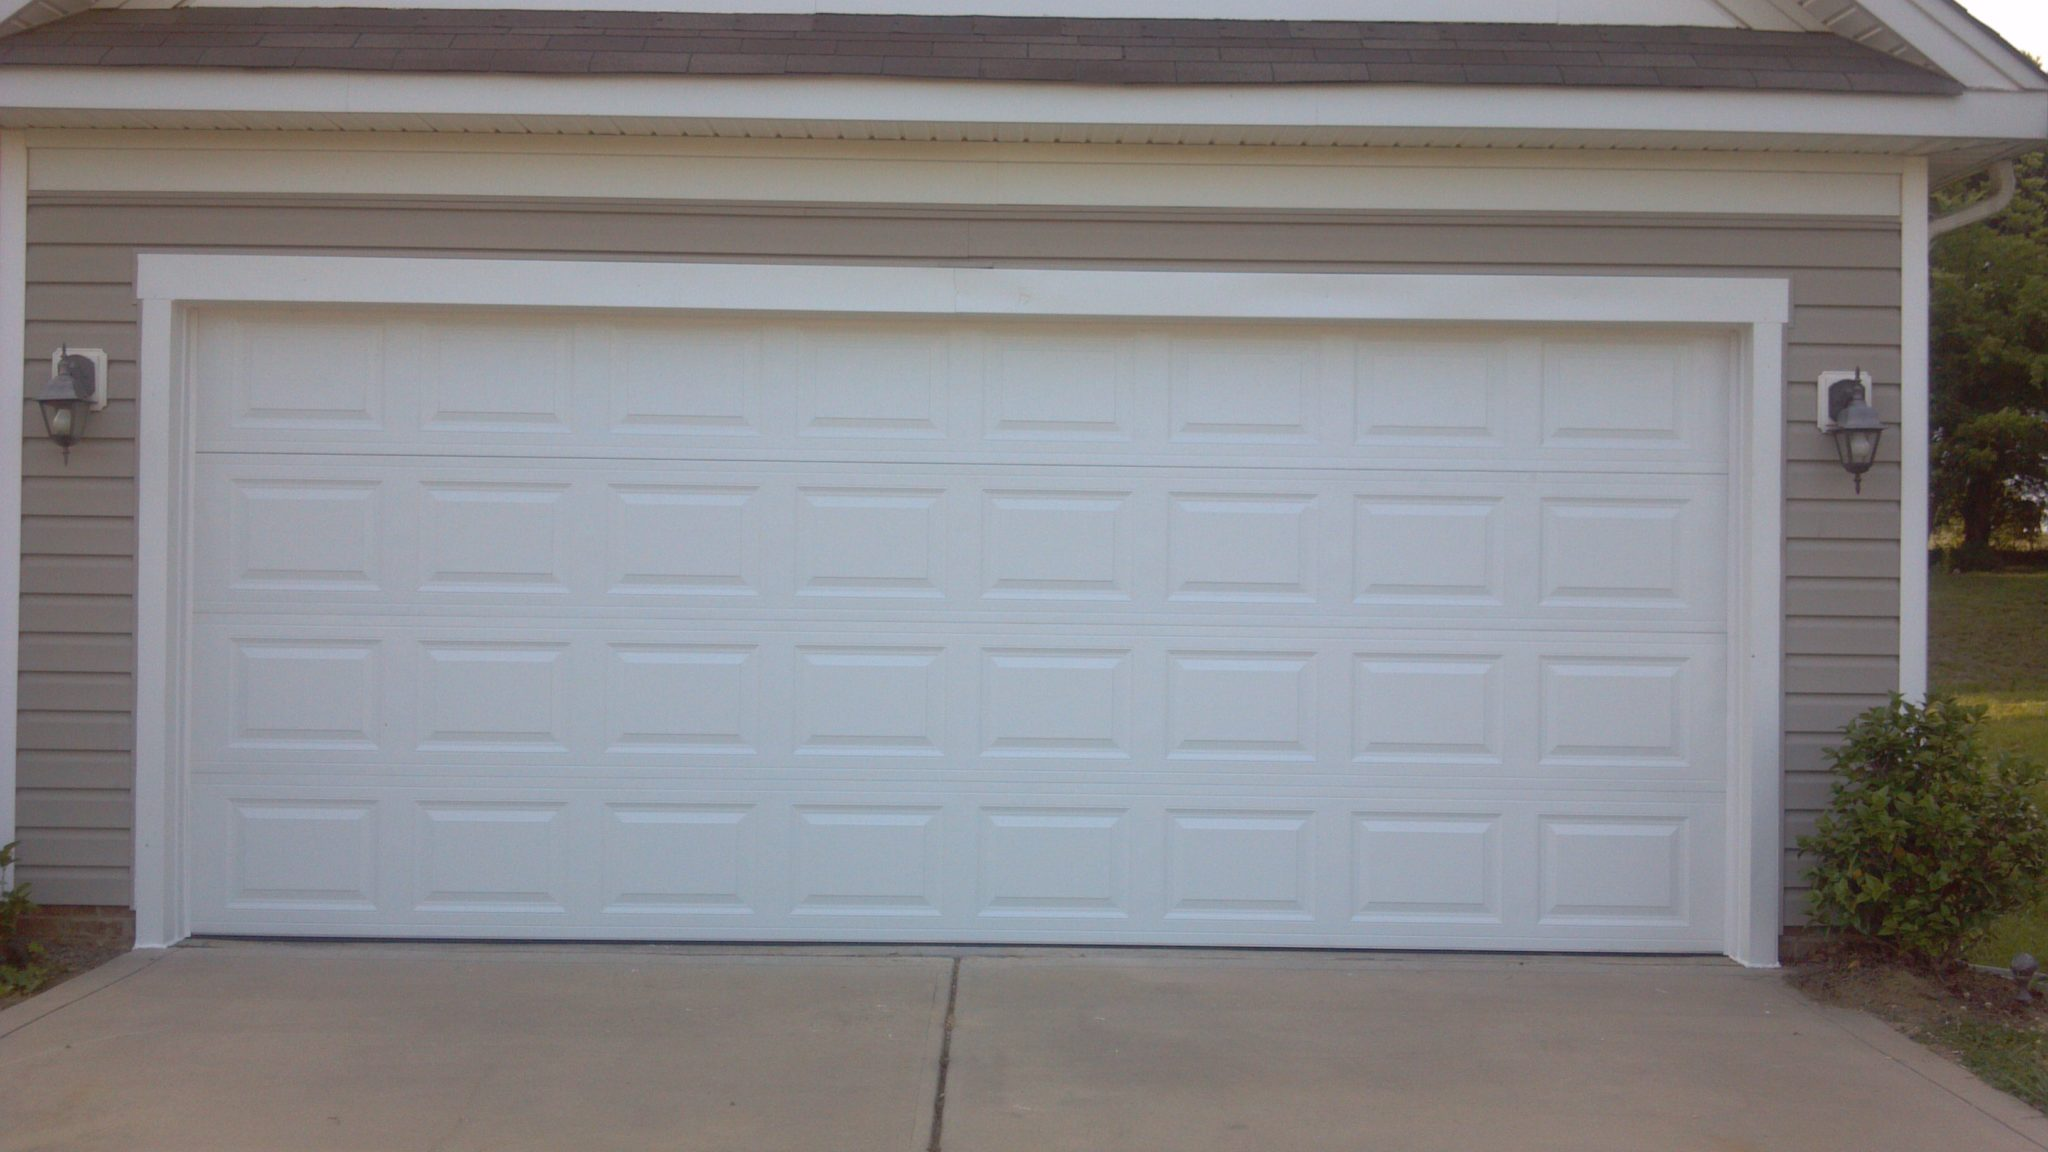 Le Meilleur Two Single Garage Doors Made Into One Garage Door After Ce Mois Ci